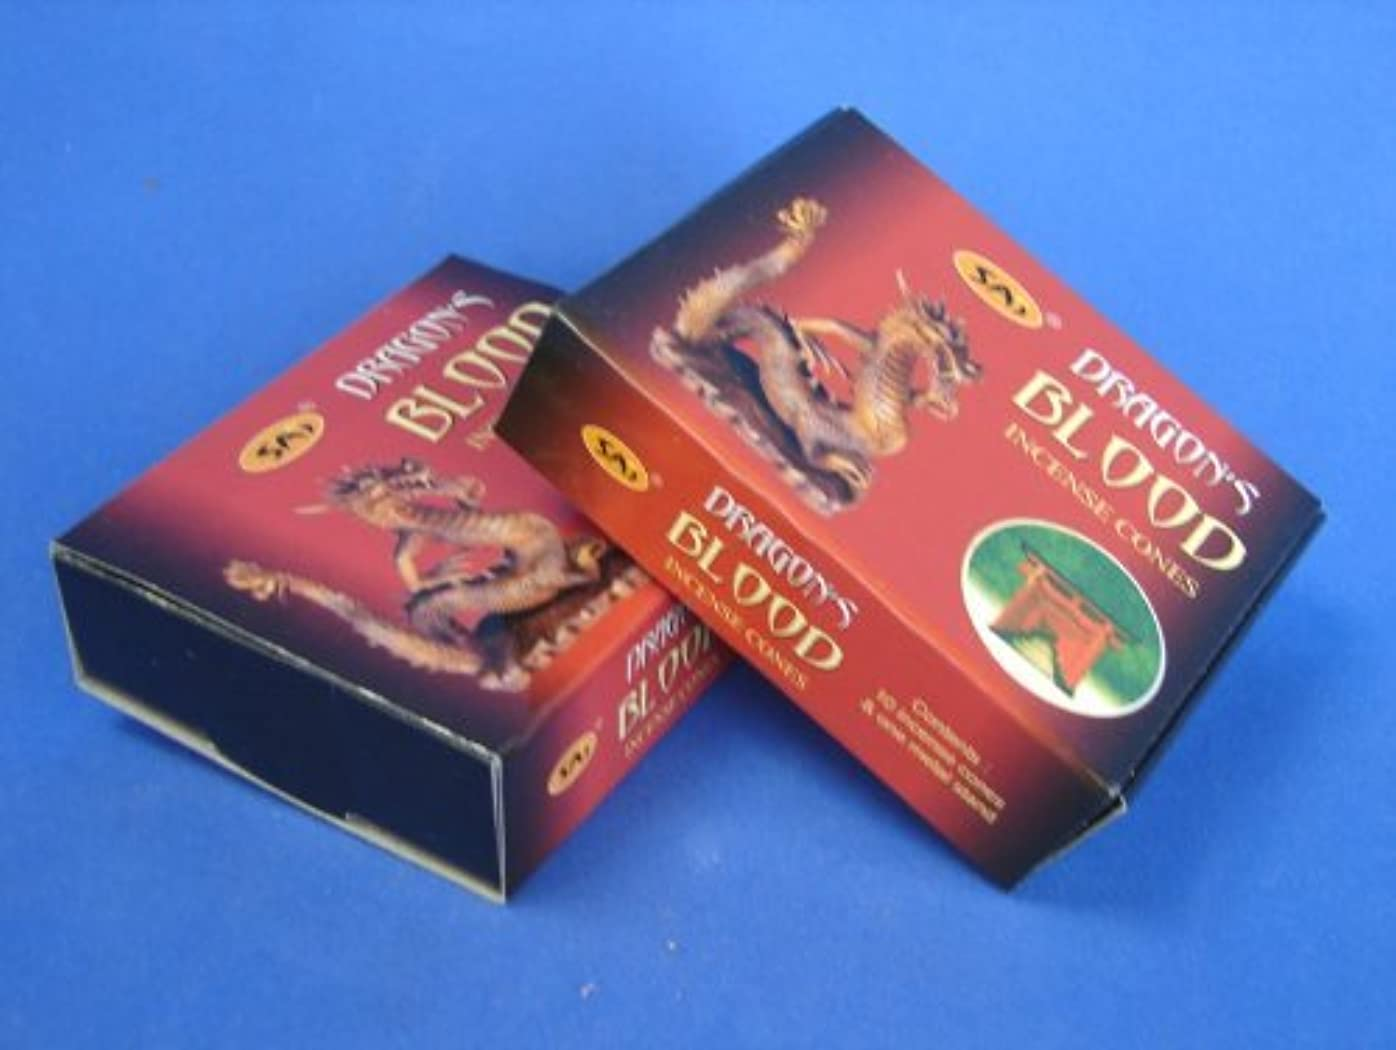 2 Boxes of Dragon Blood Incense Cones